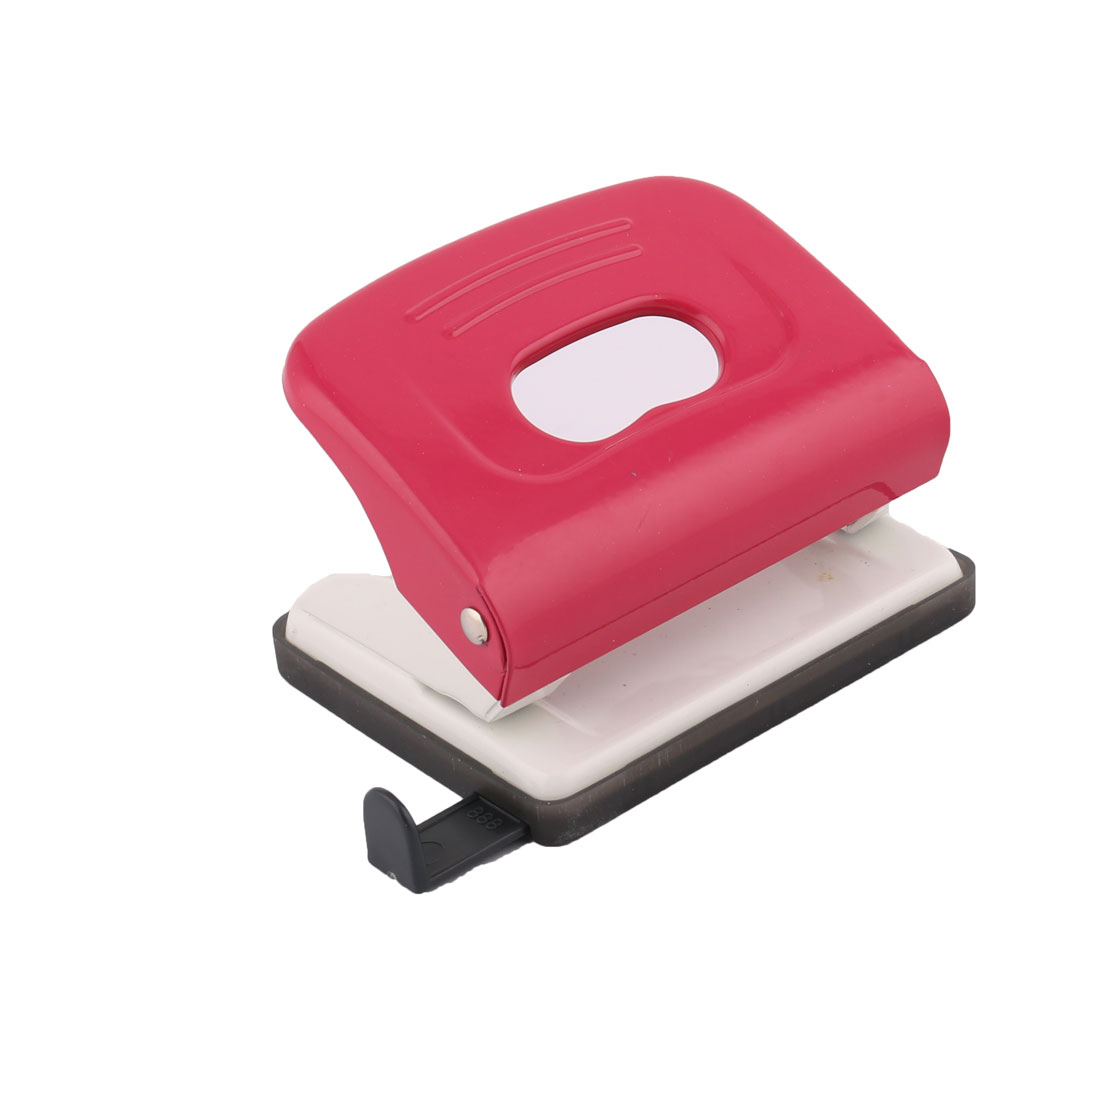 Home Office 2 Hole 5mm Dia Hole 20 Sheet Capacity File Paper Punch Puncher Fuchsia